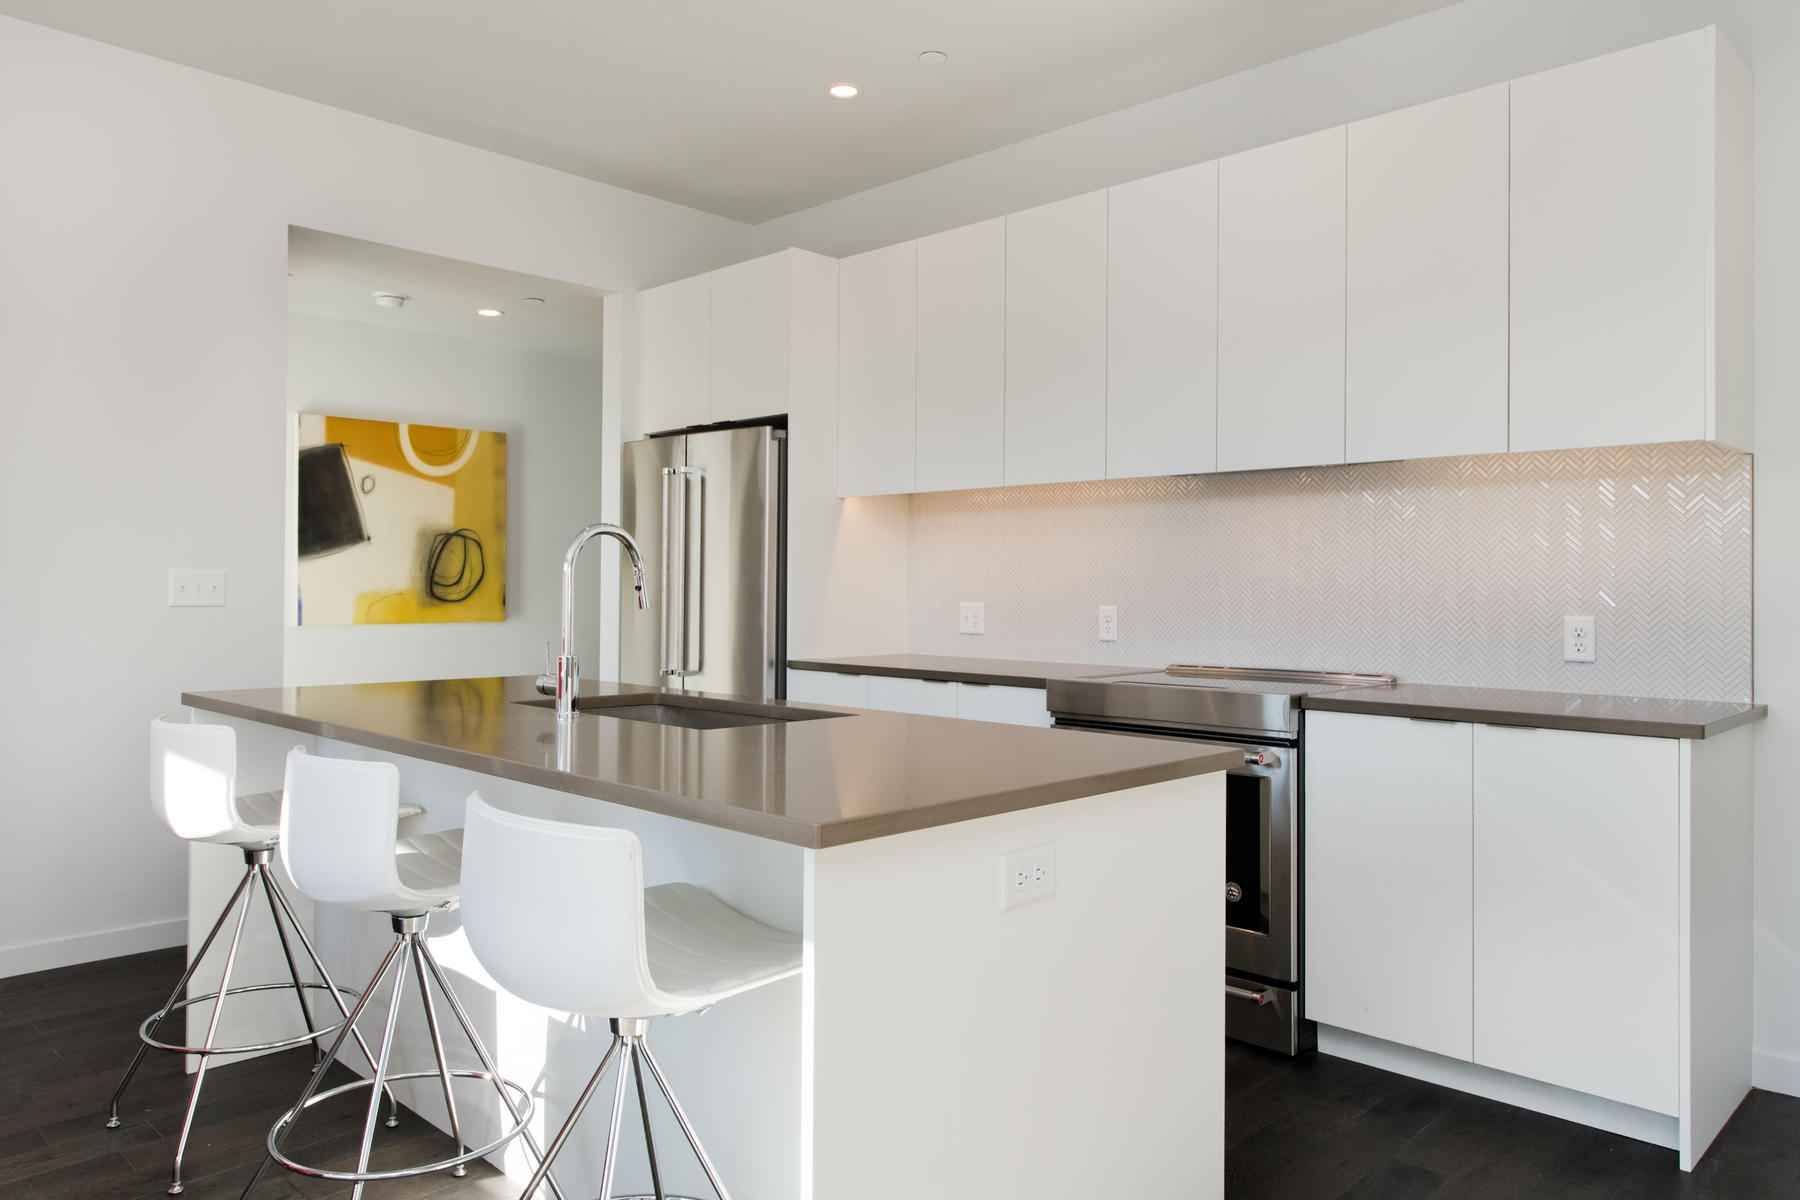 Single Family Home for Sale at Recently completed new construction, move in ready and nearing sell-out. 1300 N Ogden St #202 Denver, Colorado 80218 United States